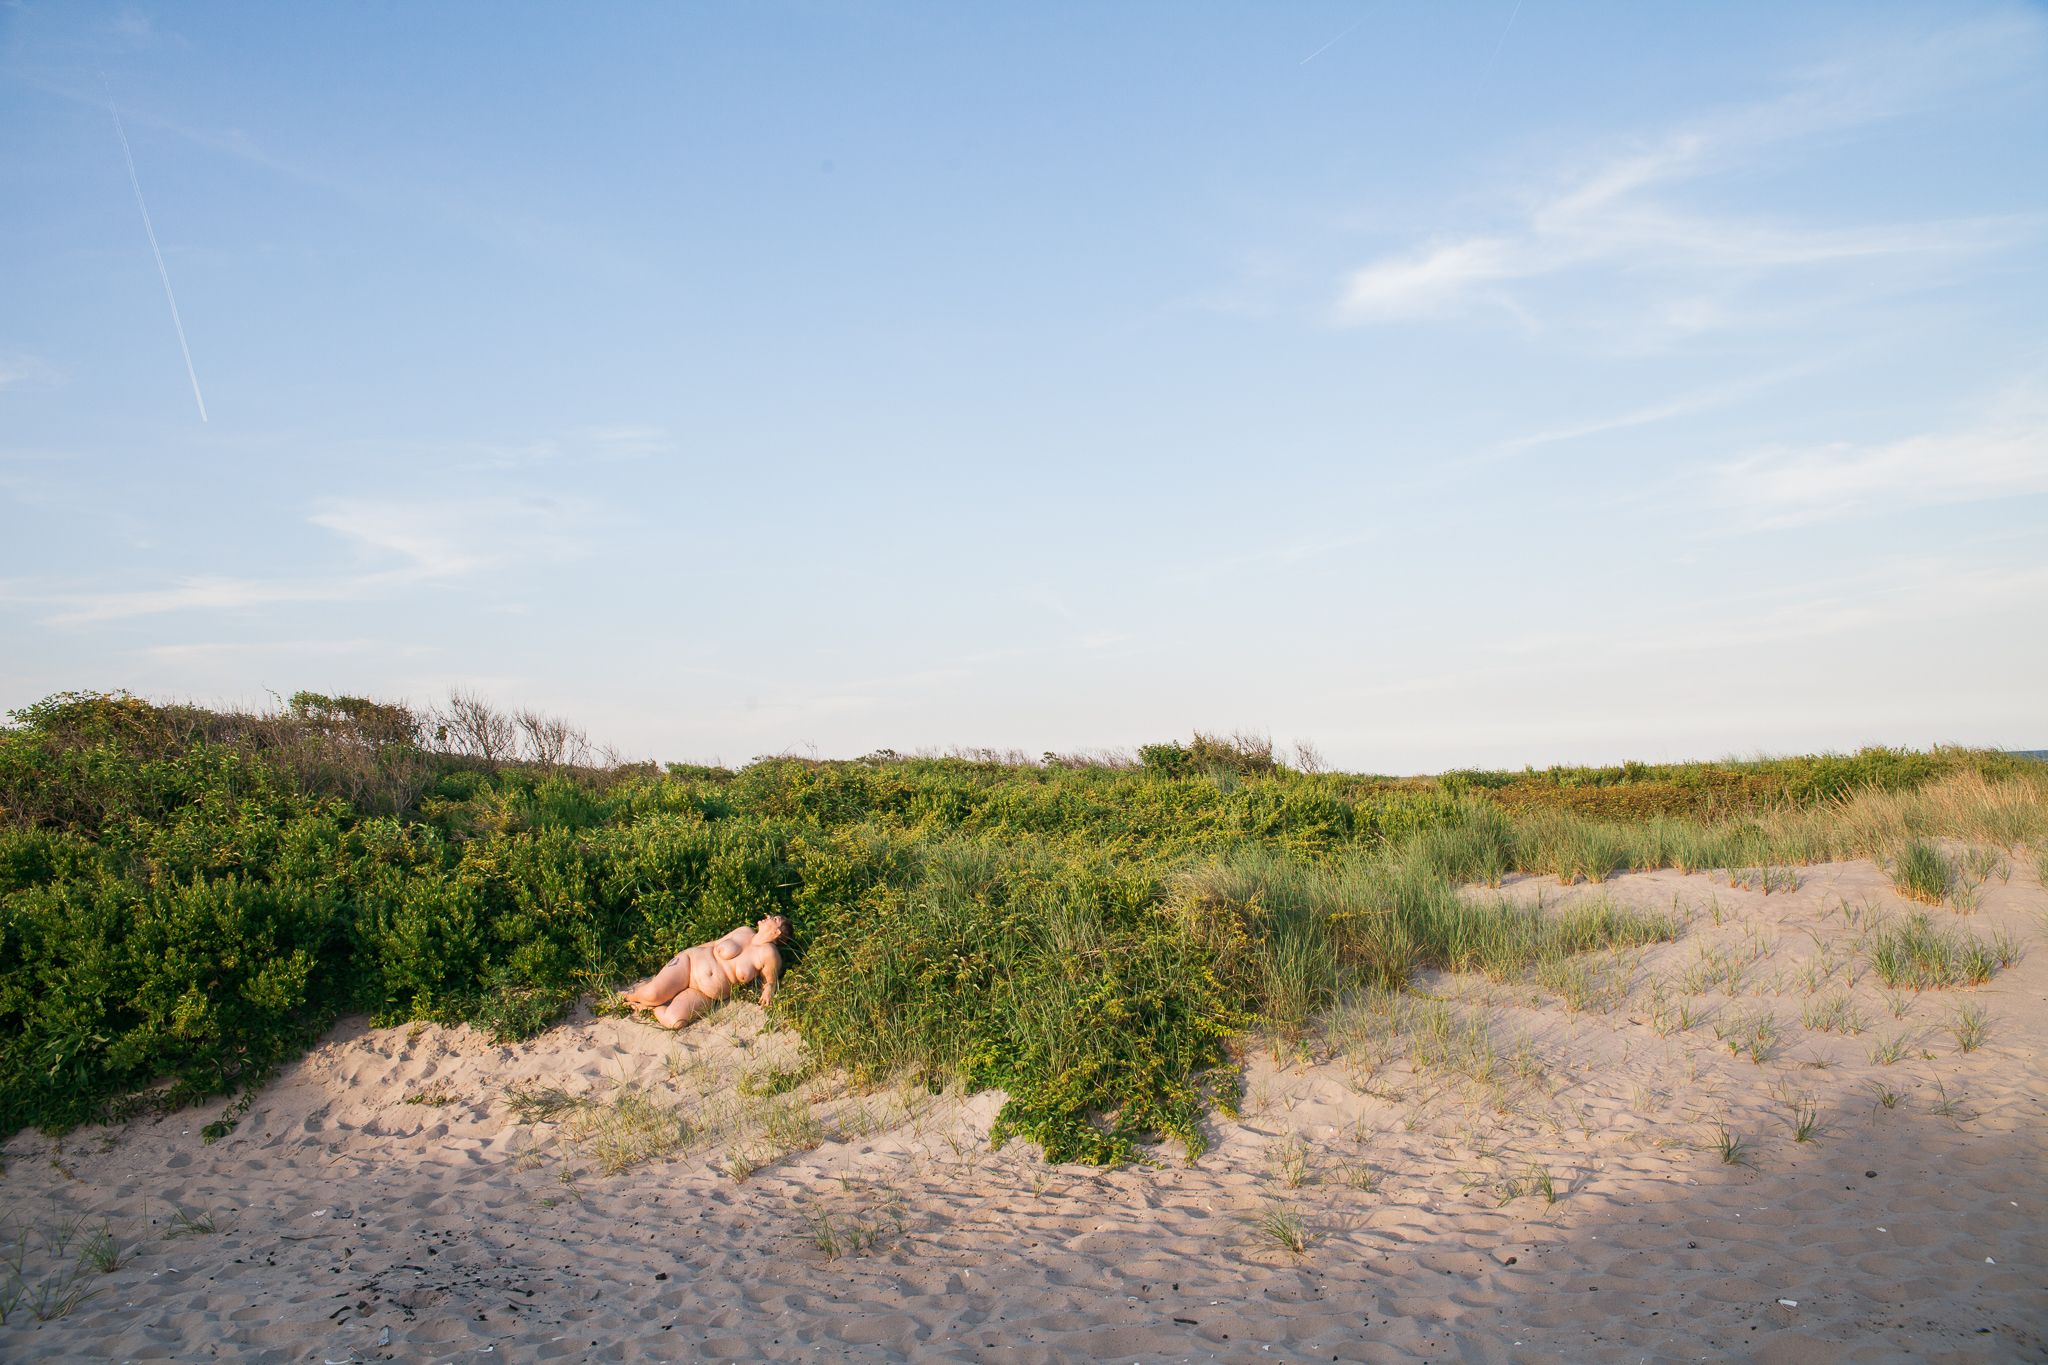 whomstudio_laura-delarato-fort-tilden-beach-nyc_0588-2048.jpg